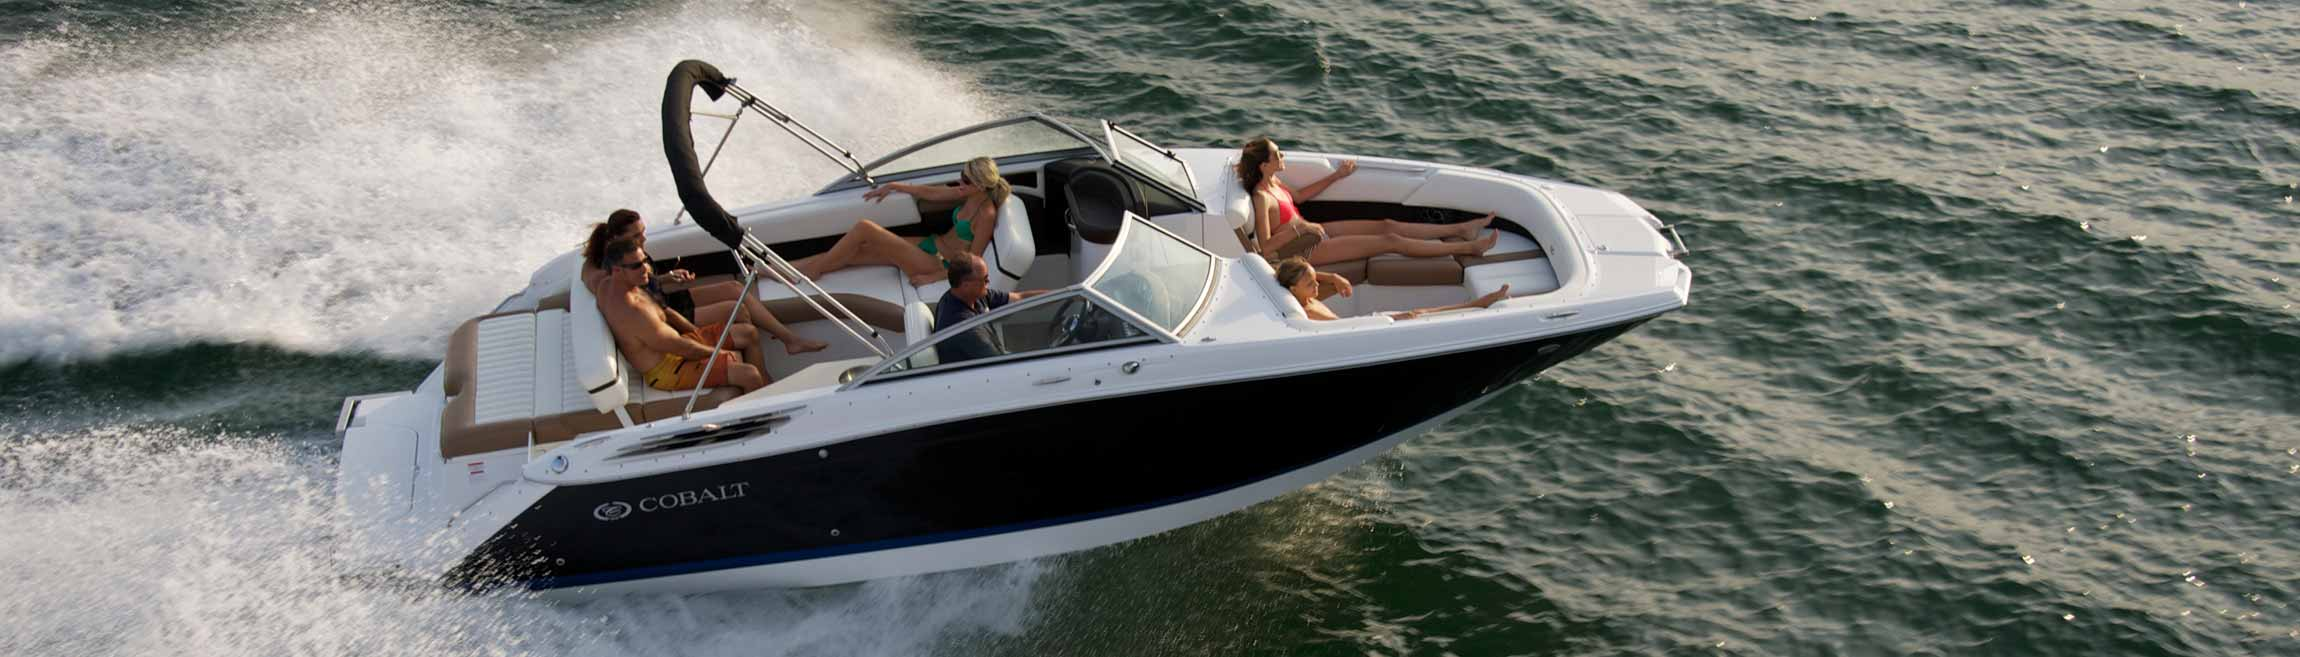 Boat Parts, Boat Builders Resources, Fuel Accessories, Fuel Containment Solutions